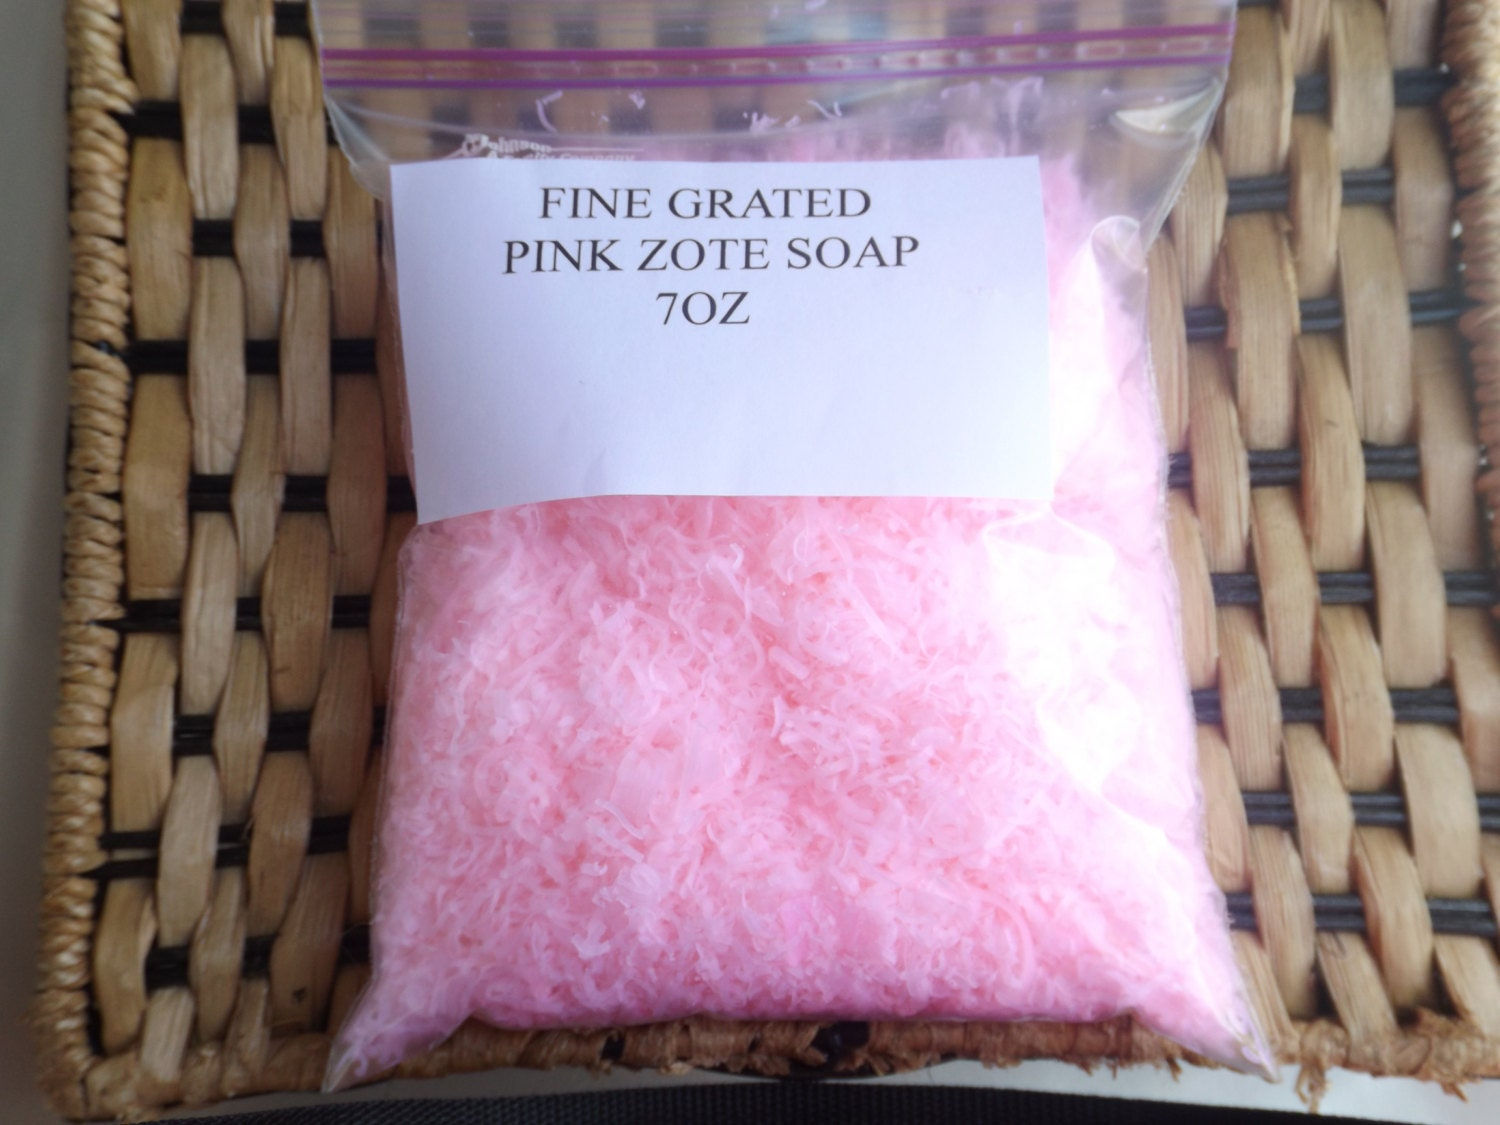 Grated Pink White Zote Soap 7 Oz For Making Homemade Laundry